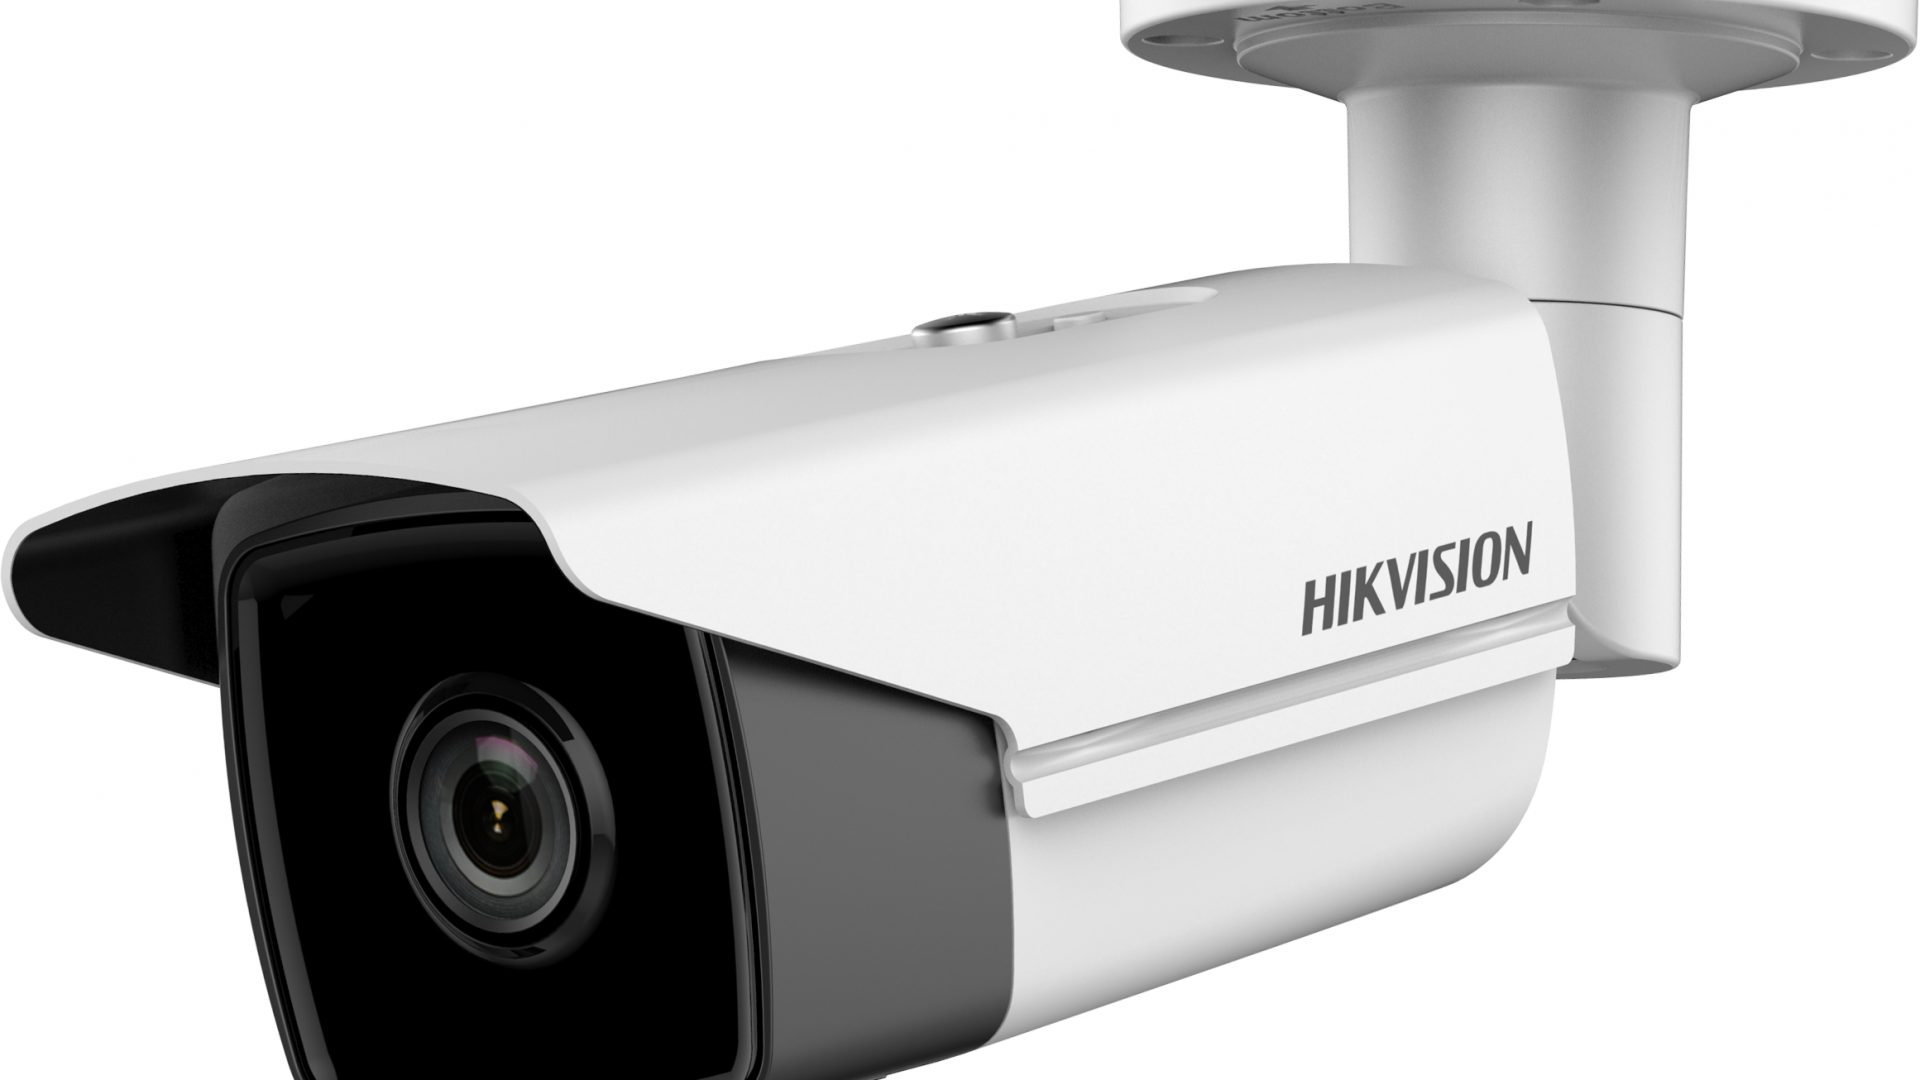 hikvision-ip-bullet-kamera-ds-2cd2t85fwd-i5-28-8mp-3840-2160-20fps-50m-ir-obj-2-8mm-ip67-h-265-poe_ie551916